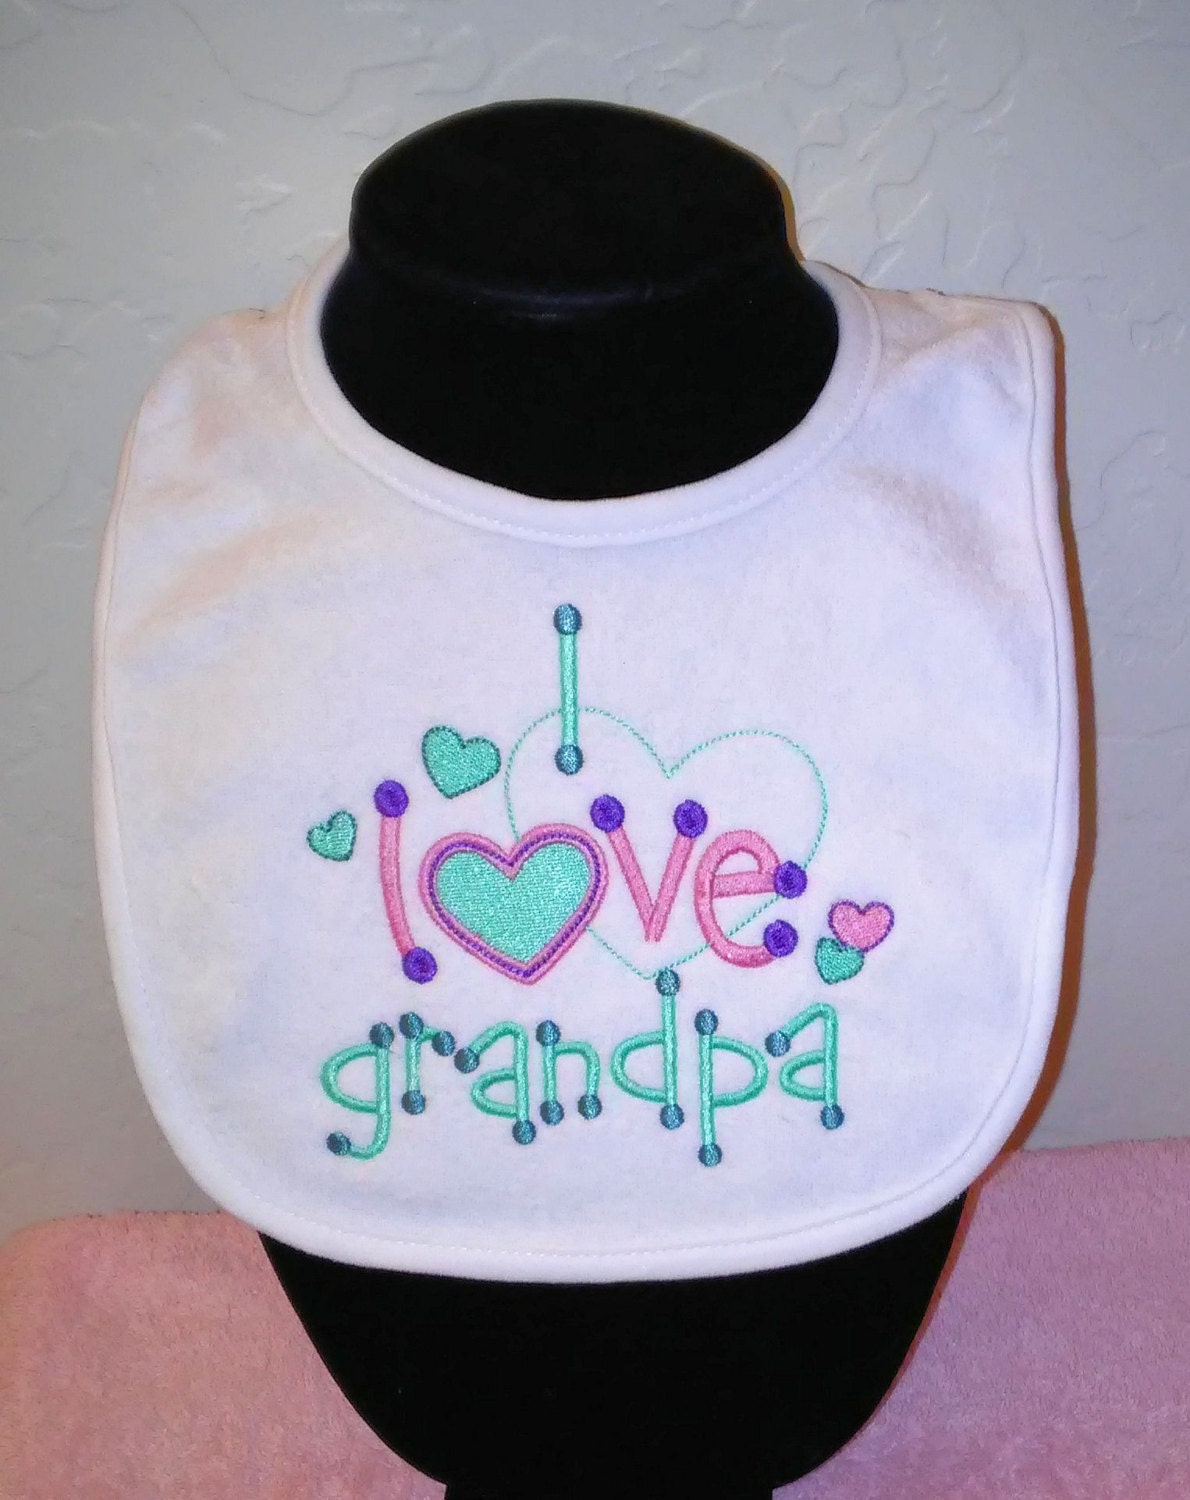 Baby Shower Gifts For Grandma ~ Gifts for baby shower gift grandma and grandpa